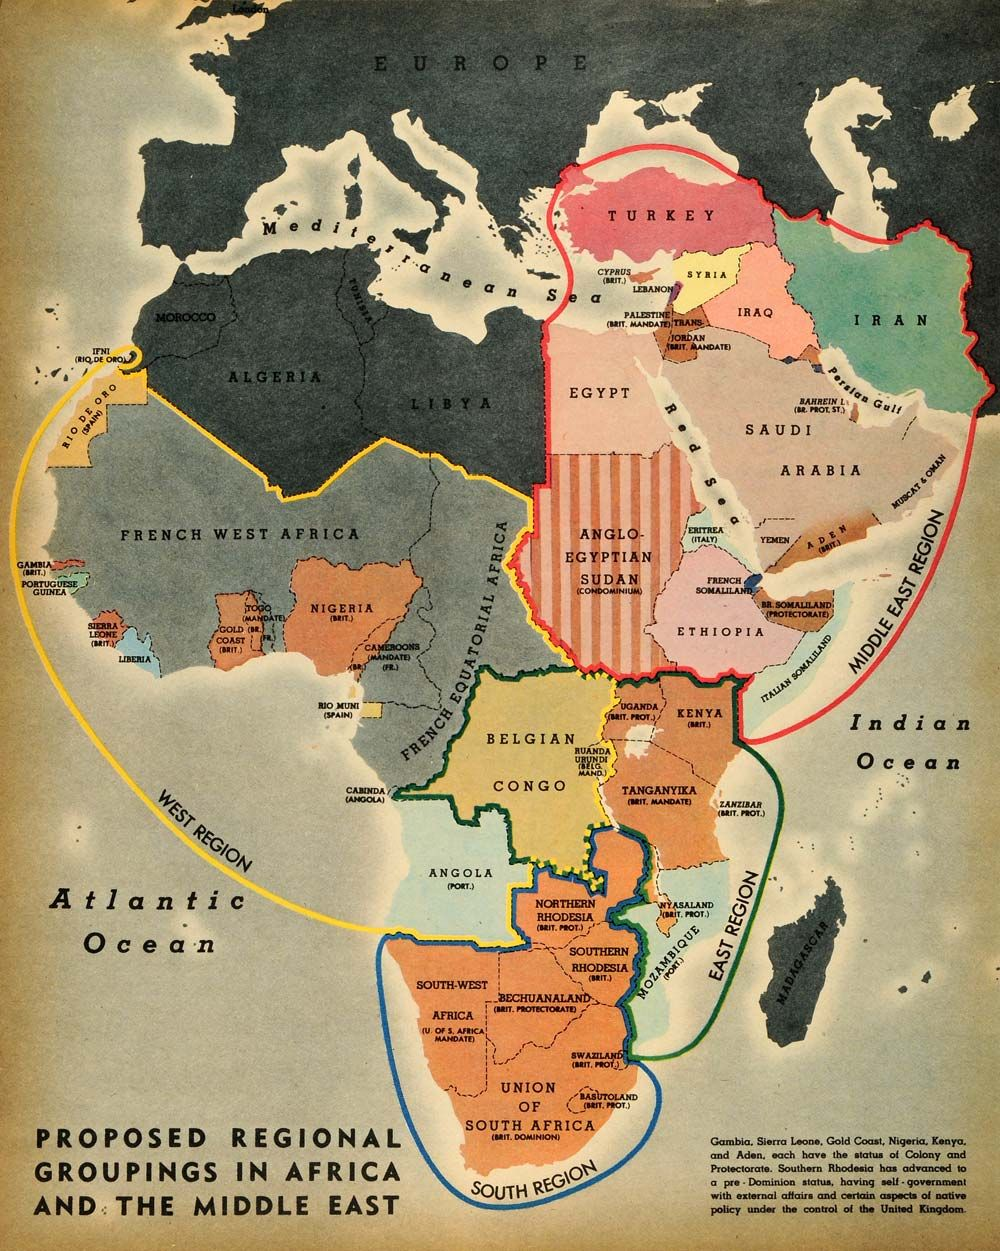 Africa at the dawn of World War